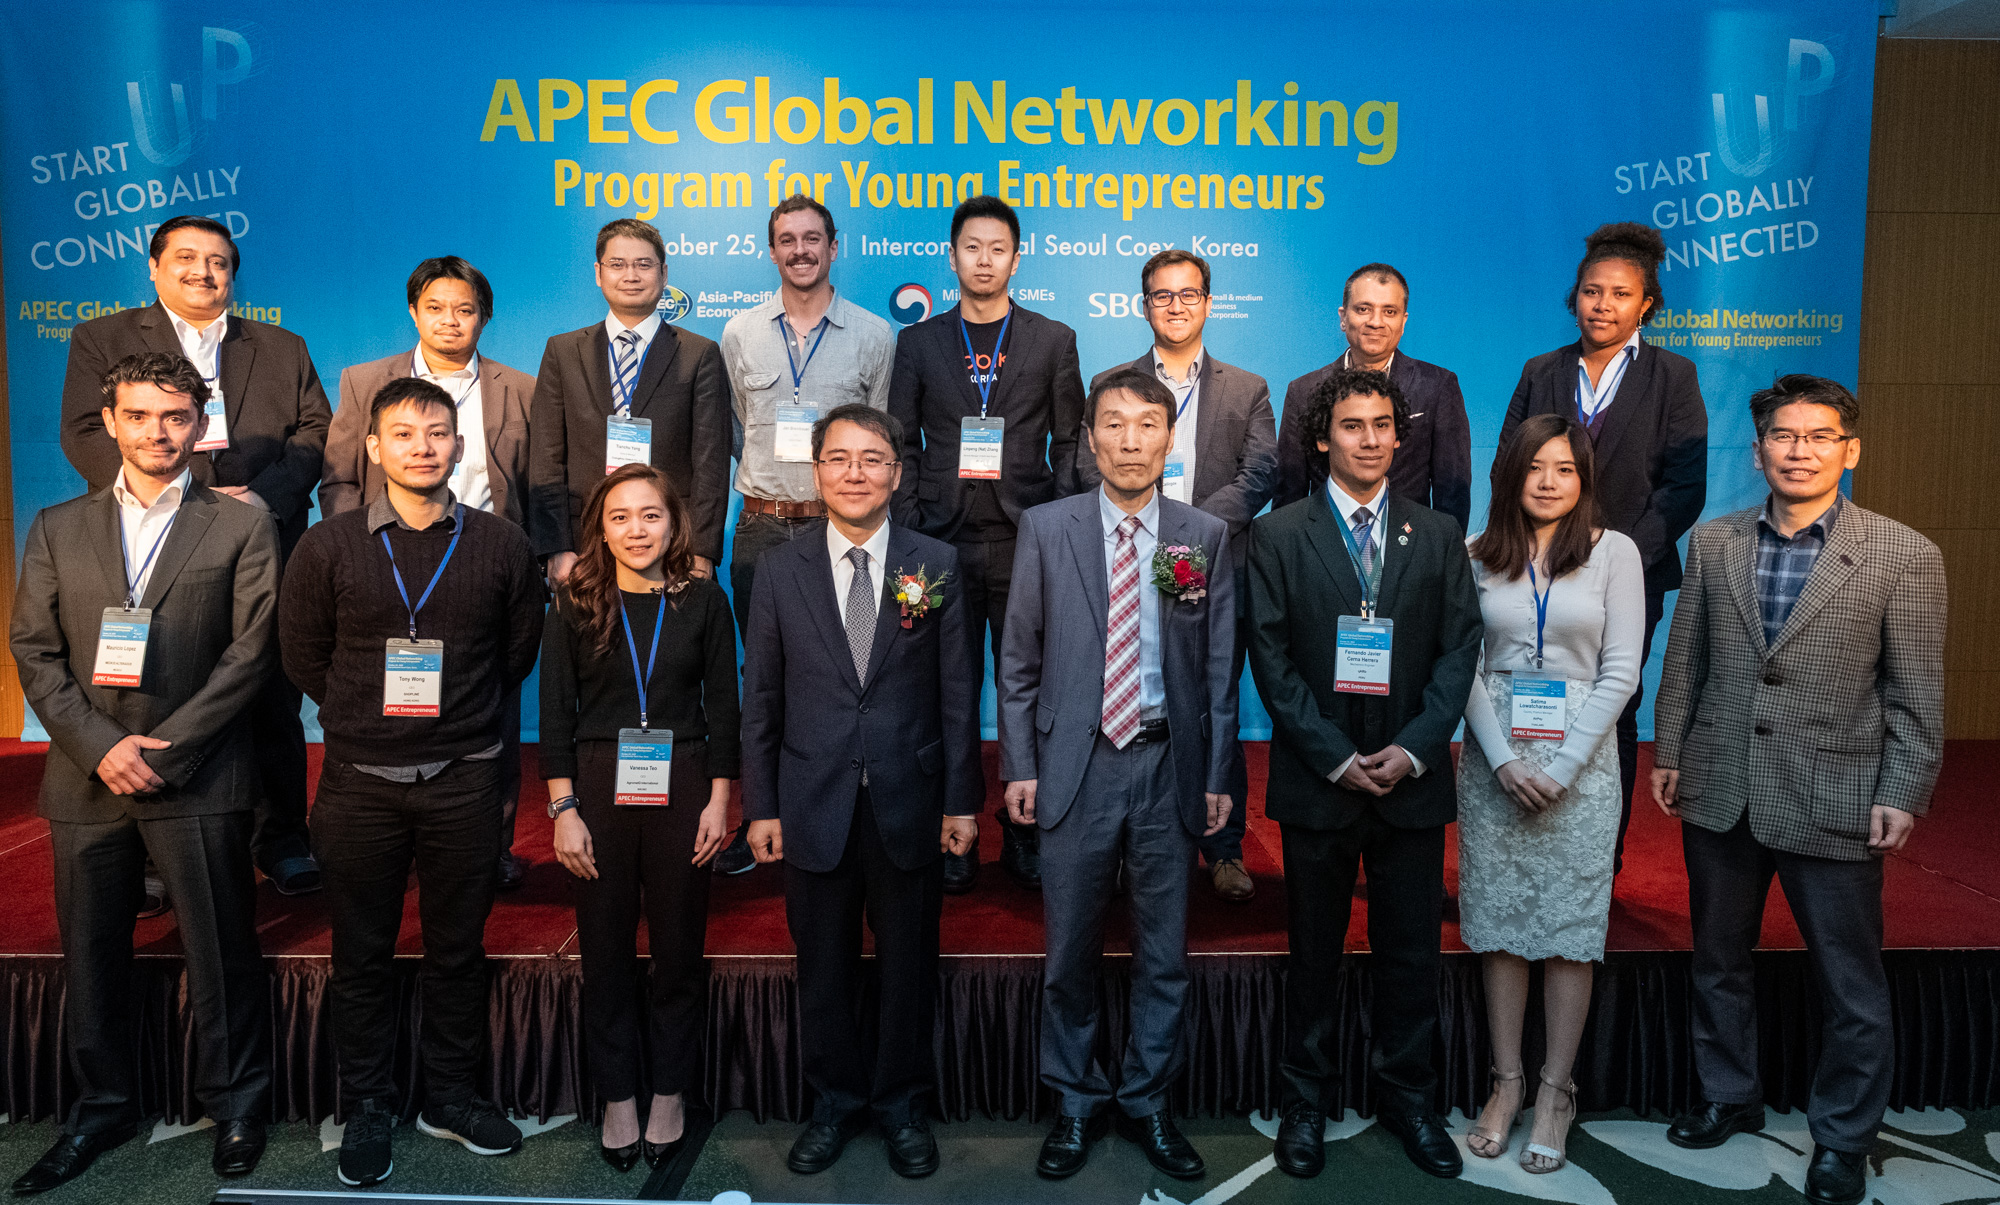 2018 APEC Young Entrepreneurs Networking Program